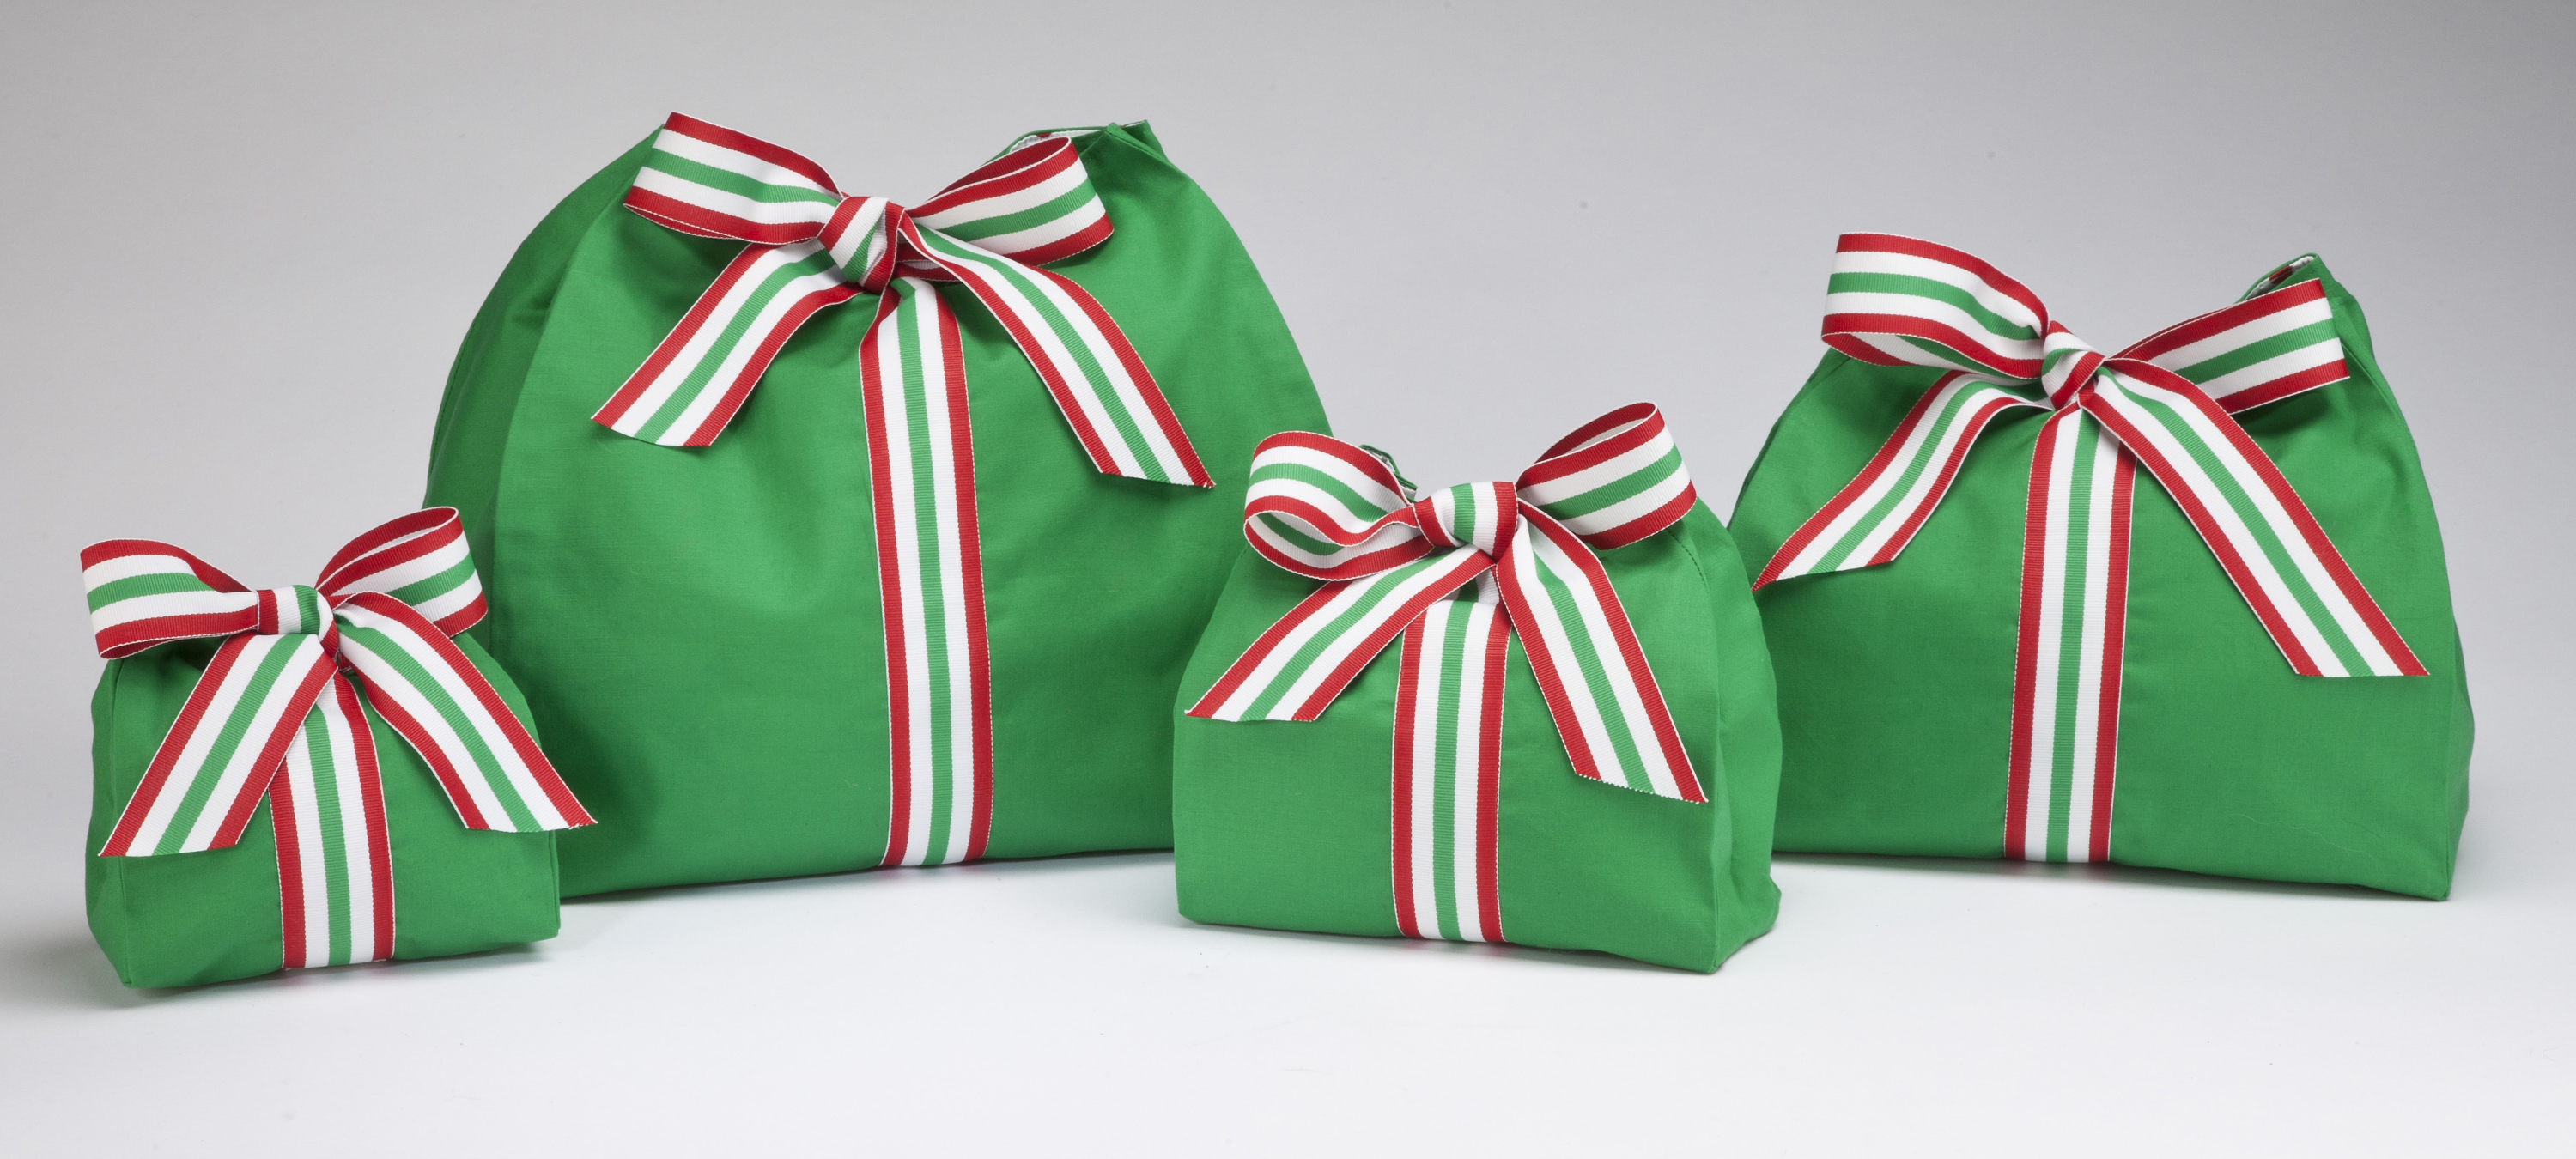 Kelly Green Stripe Bow Bags group shot (3)